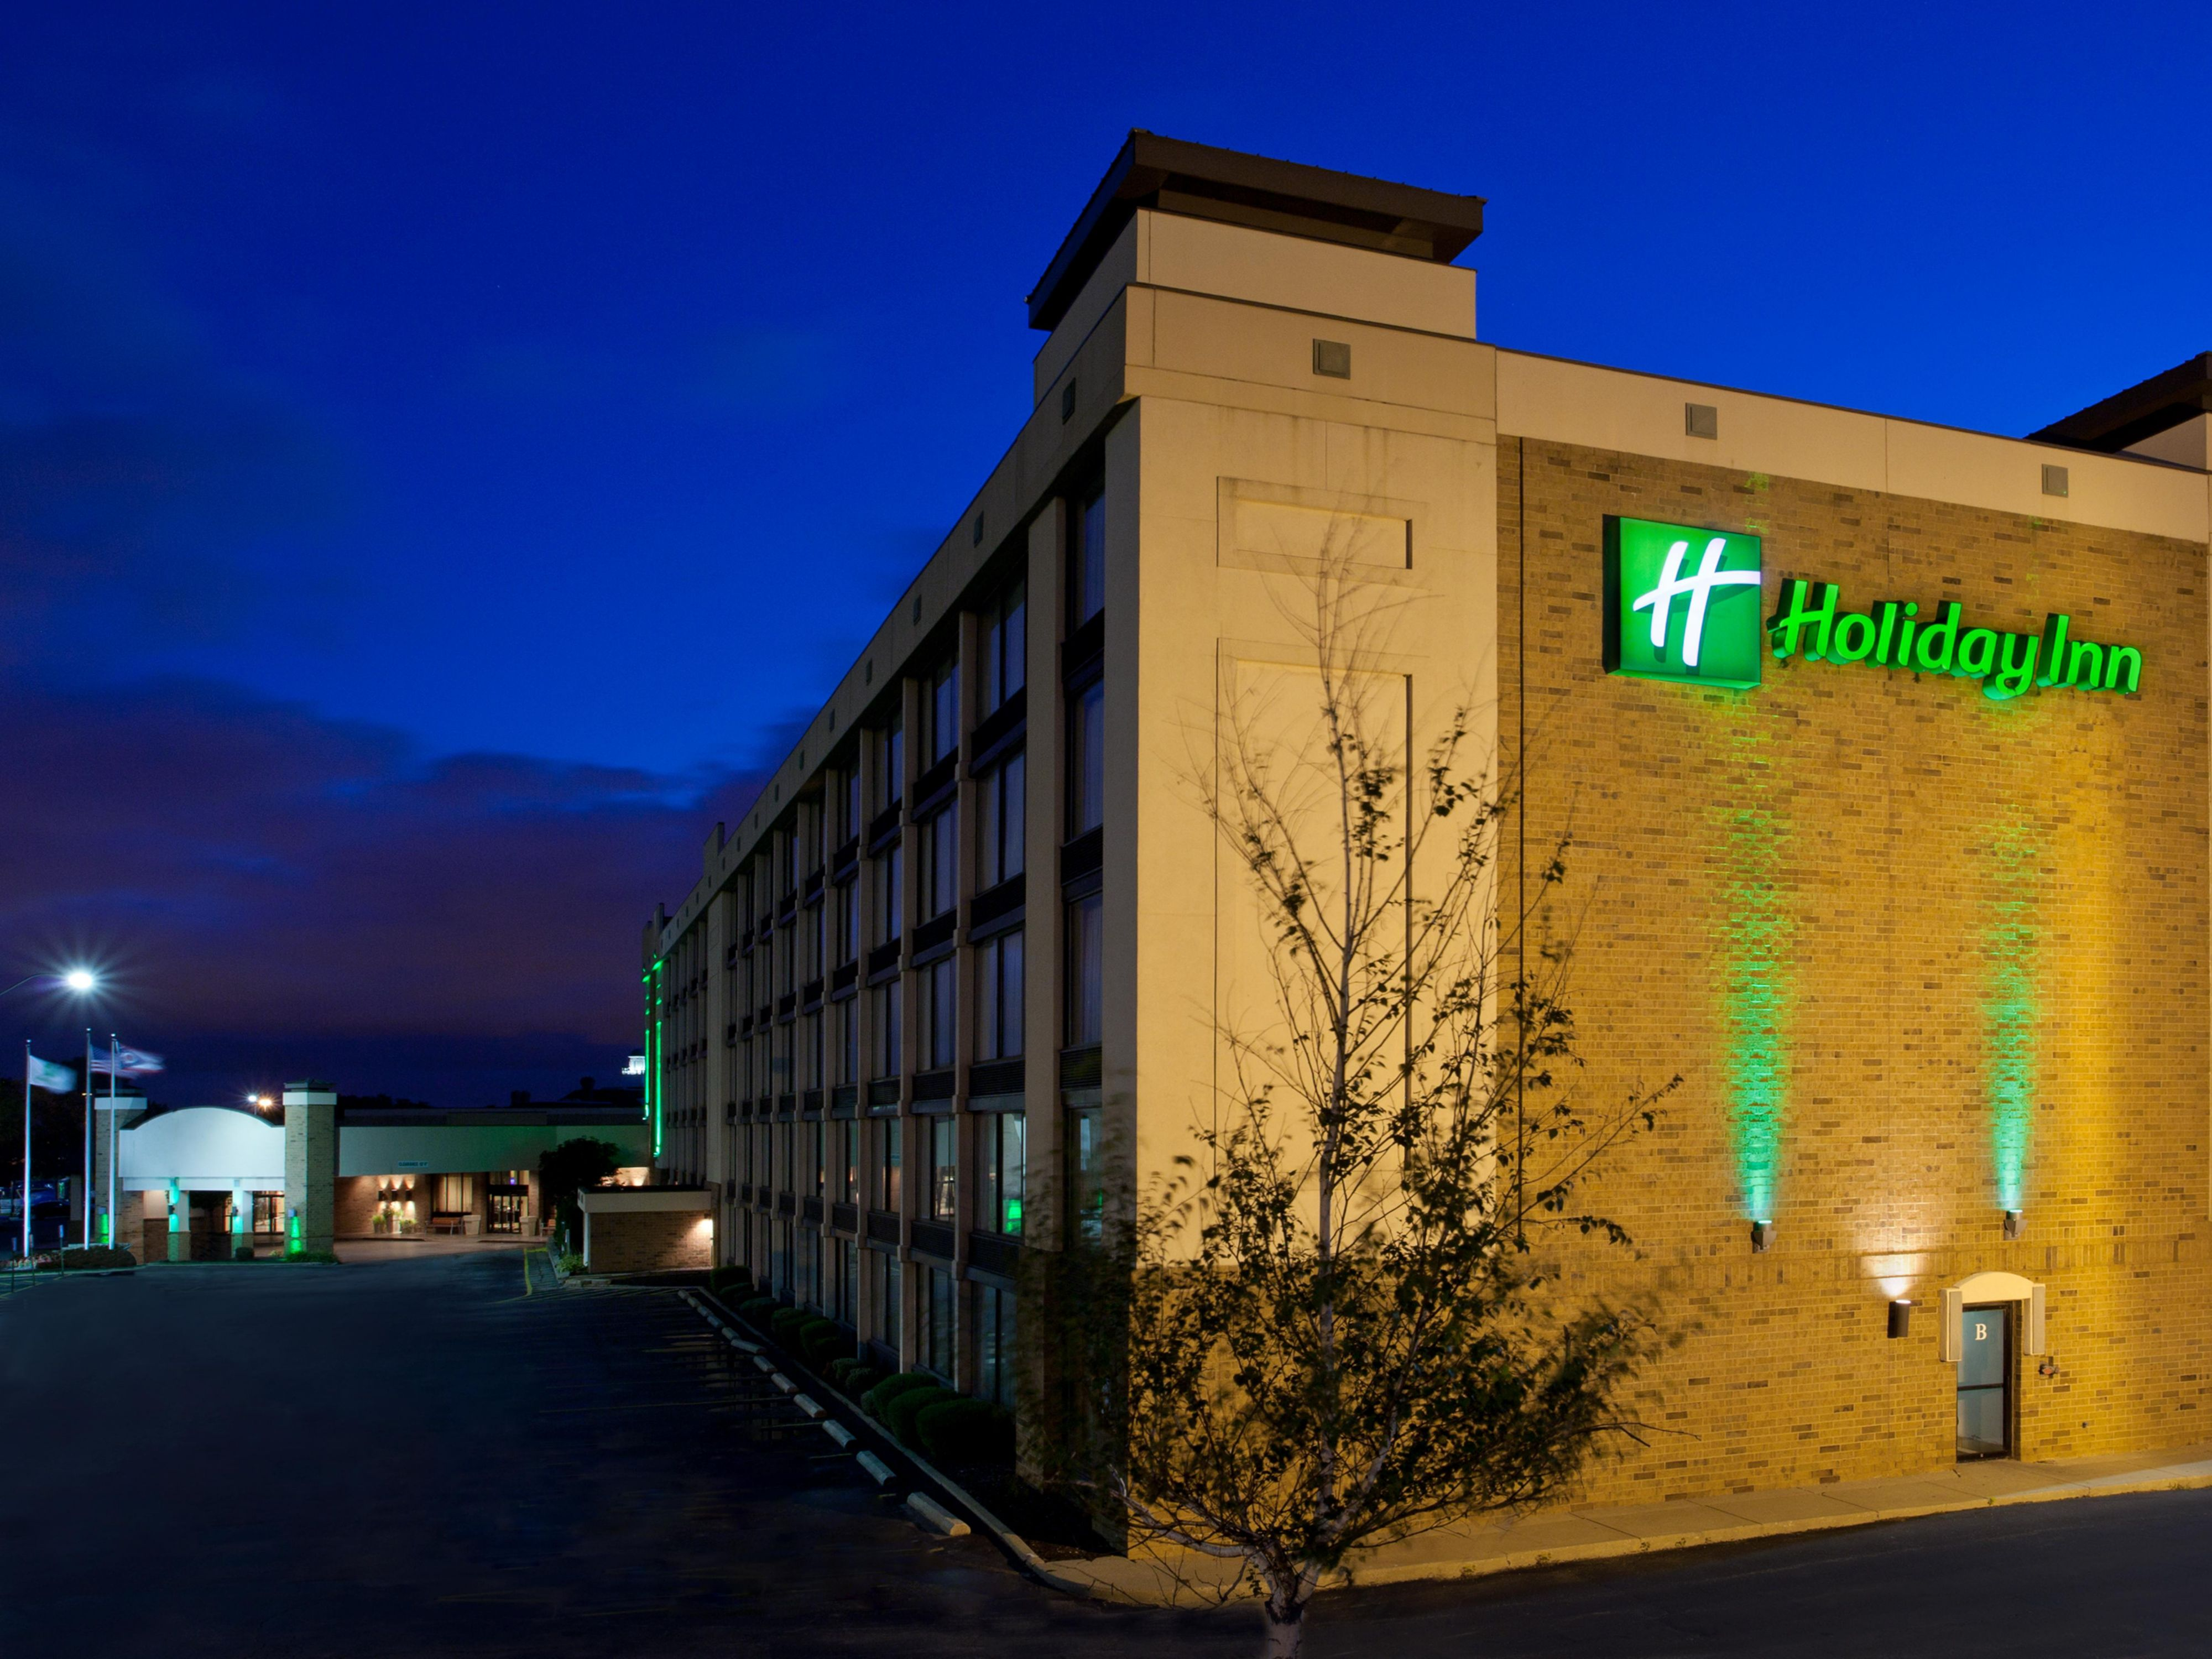 Our lights are always on for you at the Holiday Inn Independence